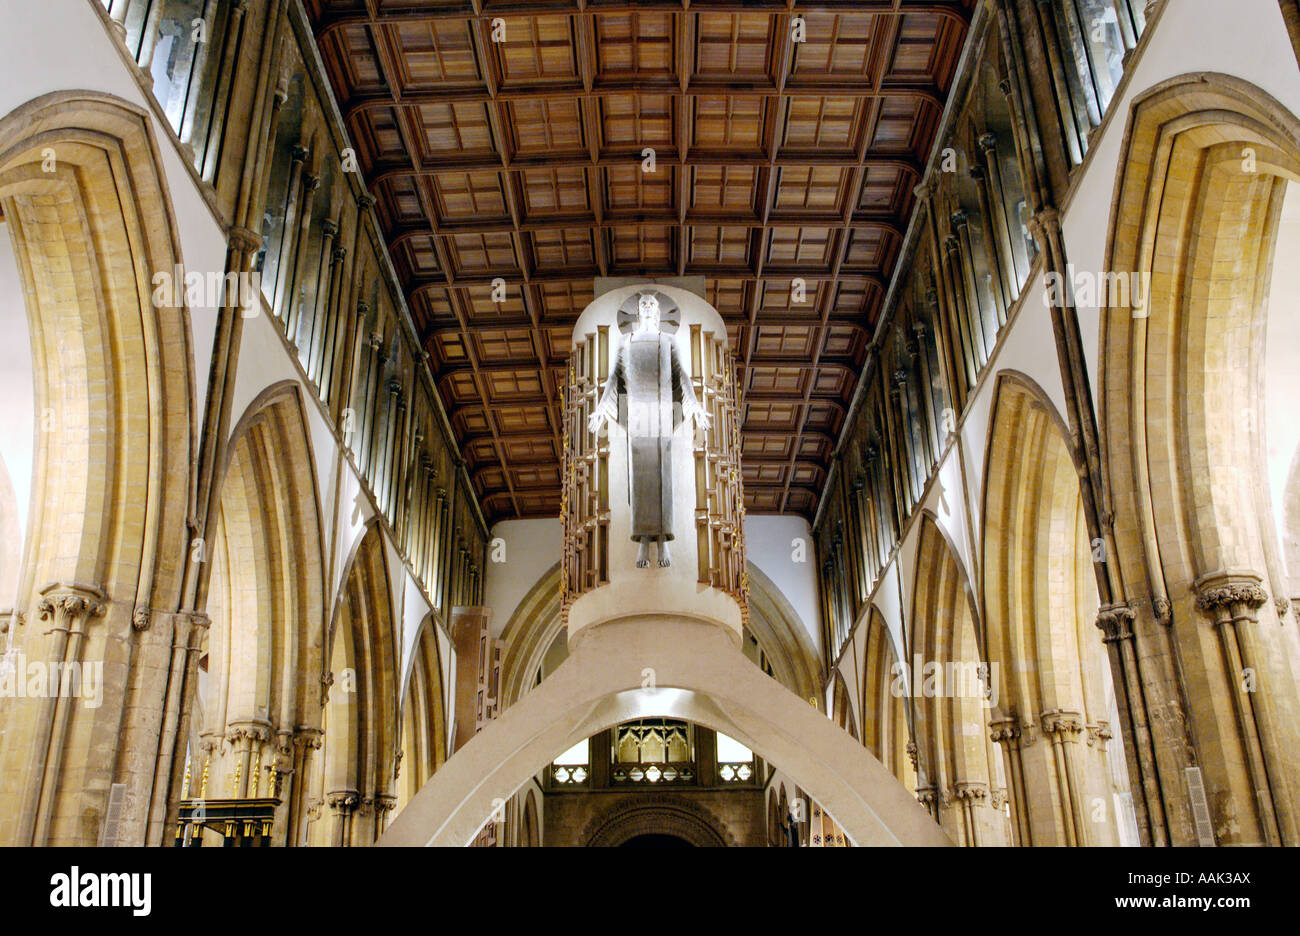 Llandaff Cathedral Cardiff South Wales UK interior architectural lighting with Christ in Majesty by Jacob Epstein - Stock Image